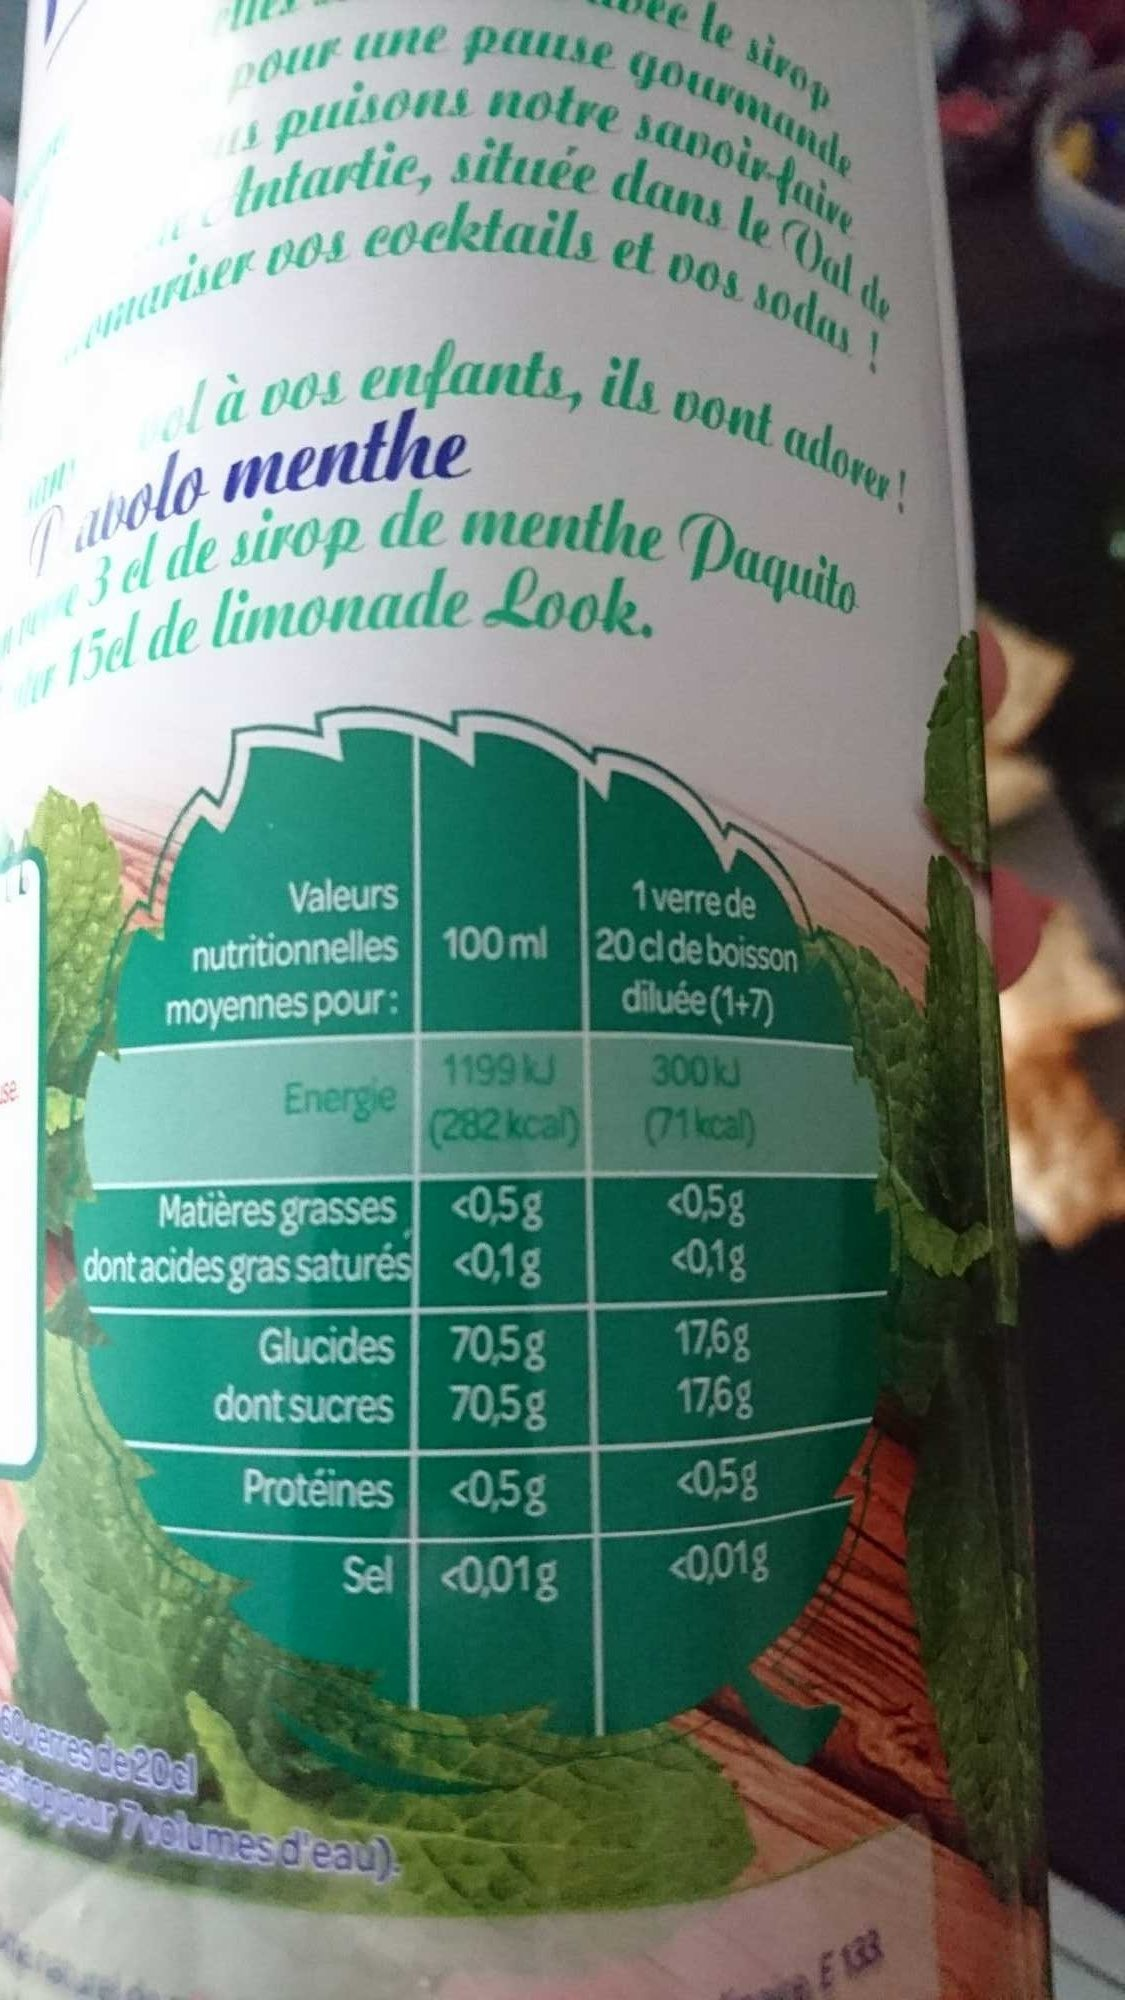 Sirop menthe - Nutrition facts